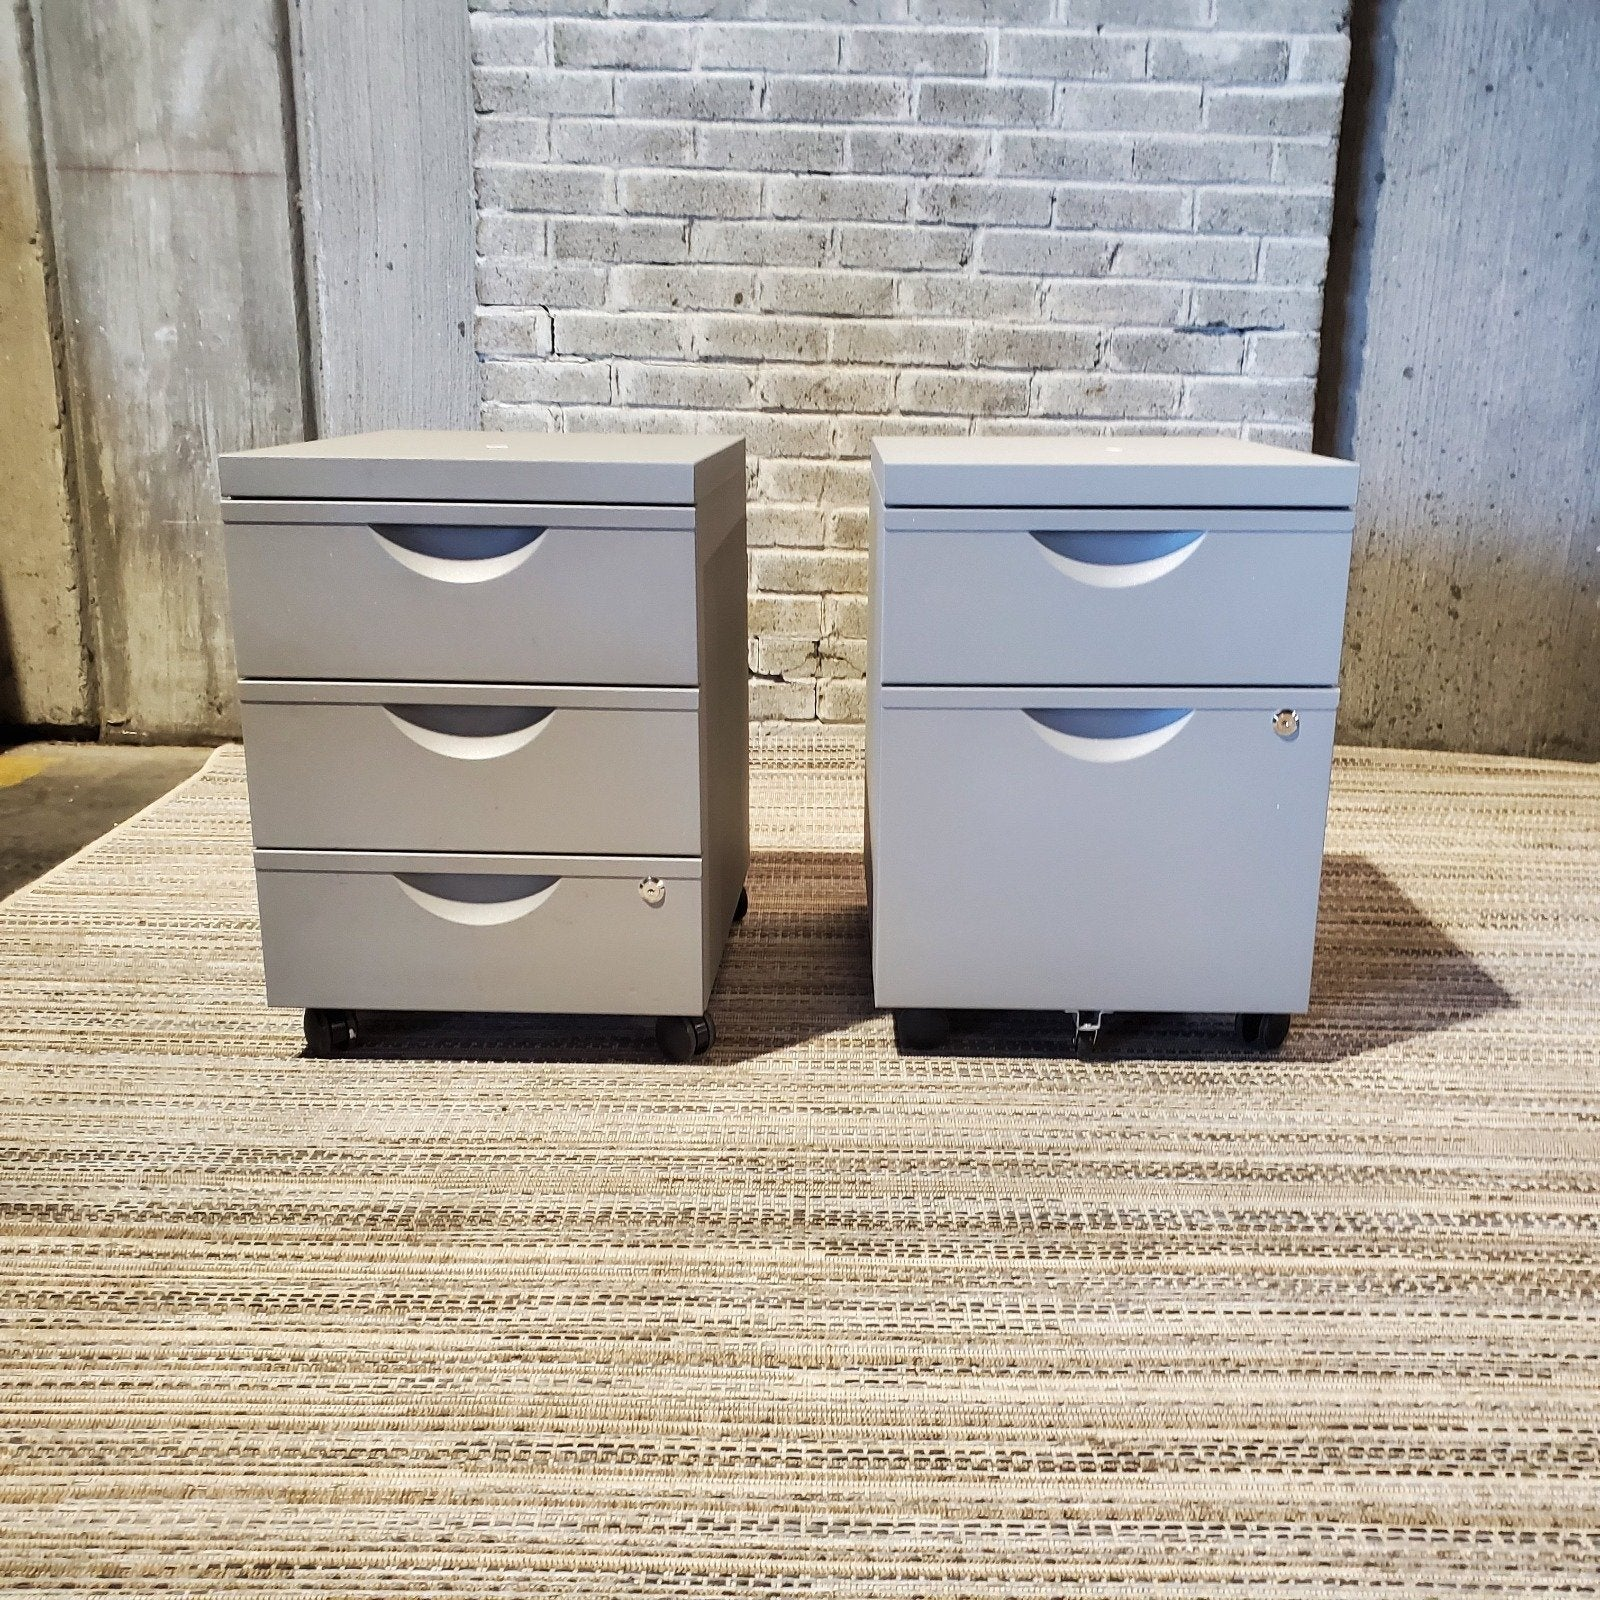 Pre-Owned - Pre-Owned Ikea Mobile Pedestals - Duckys Office Furniture